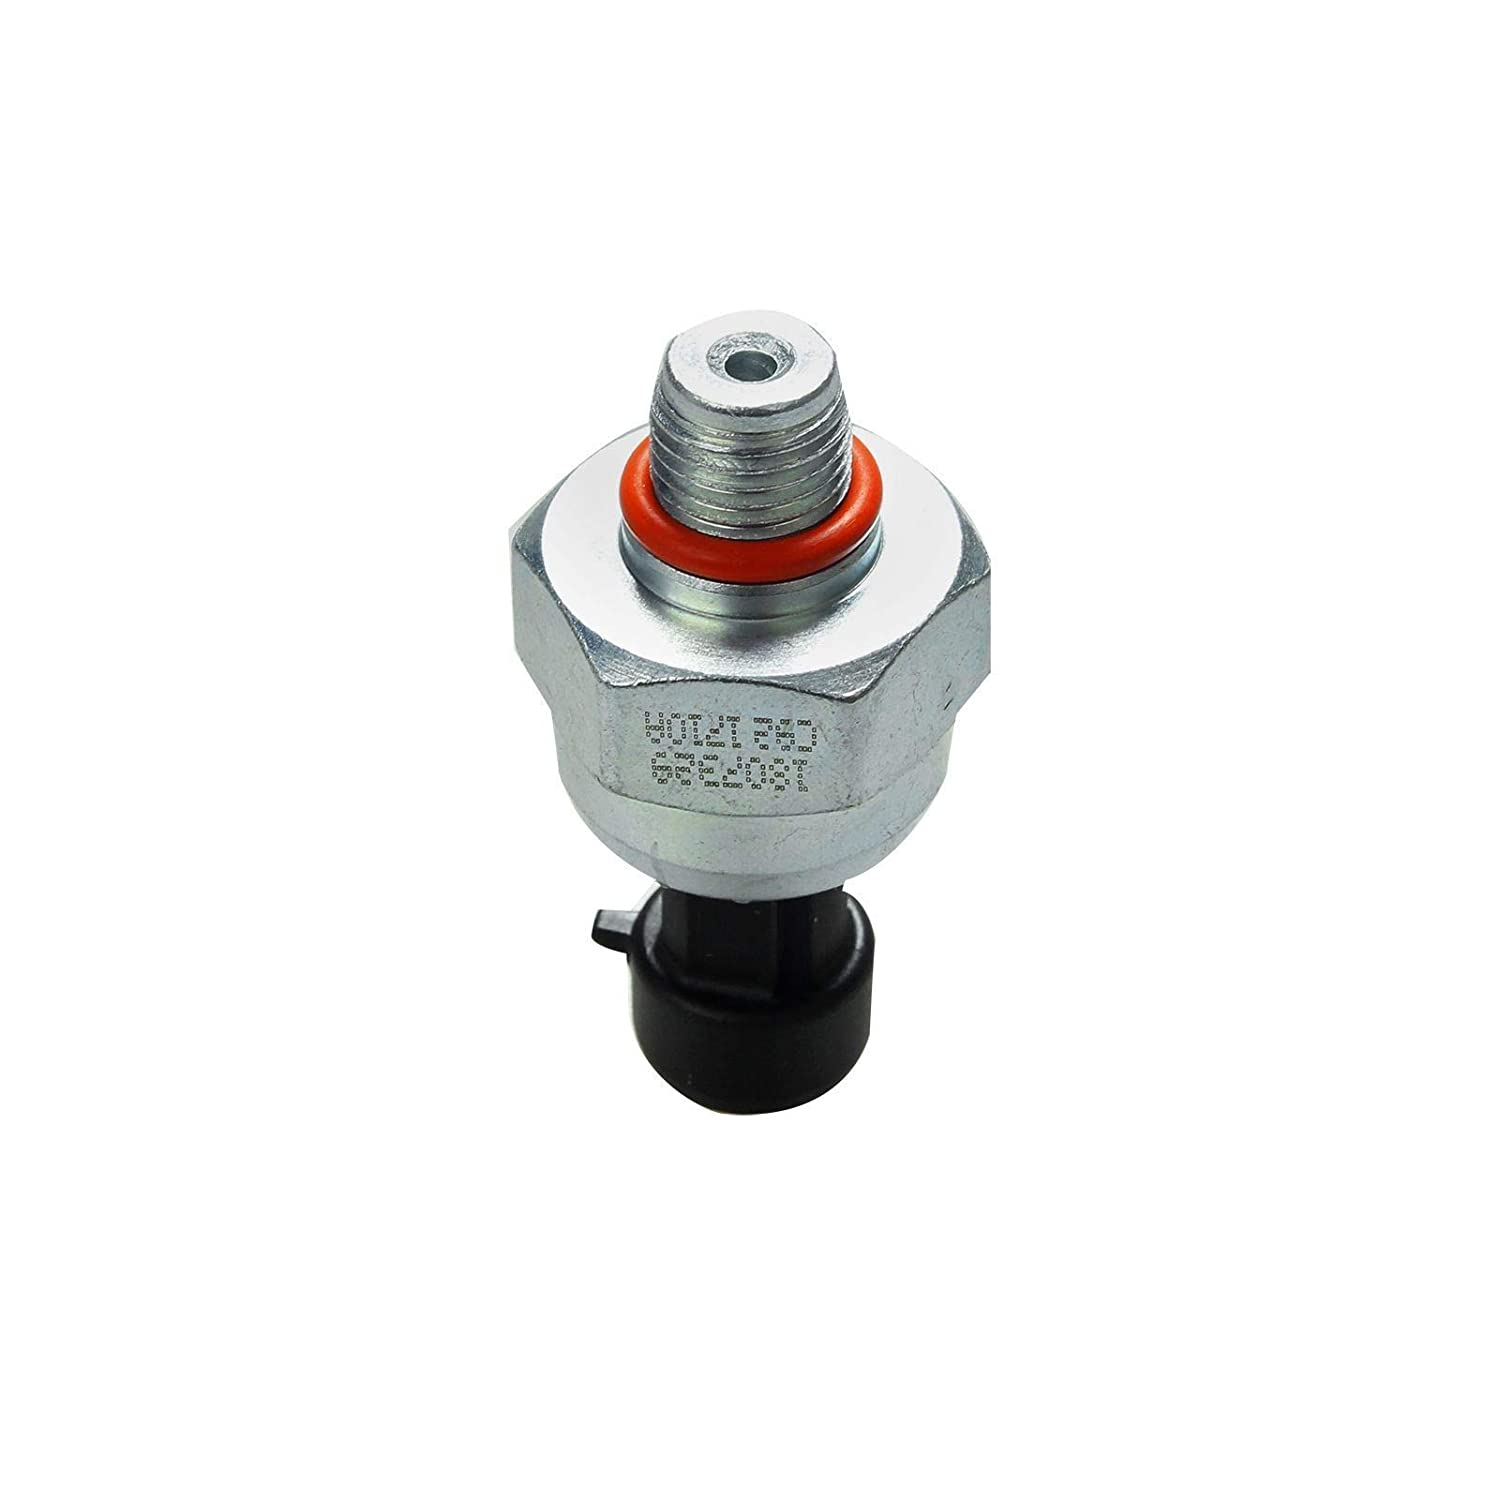 BETTERCLOUD ICP & IPR Fuel Pressure Regulator & Sensor w